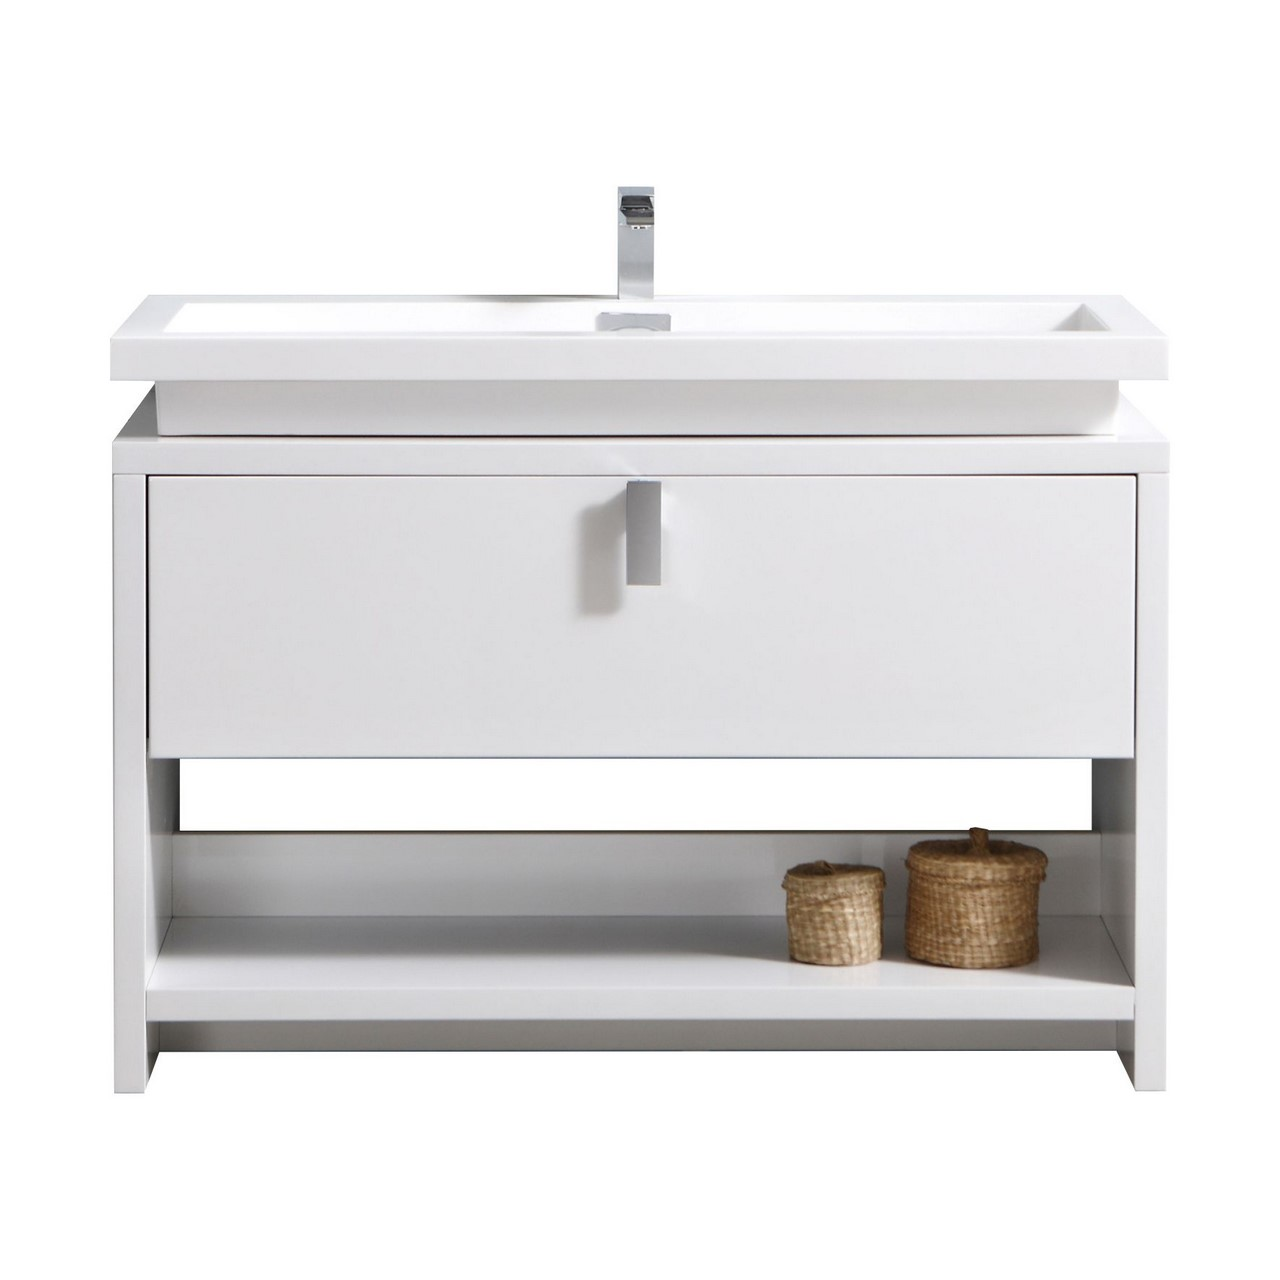 "Modern Vanity 48"" High Modern Bathroom Vanity w/ Cubby Hole and Color Option"